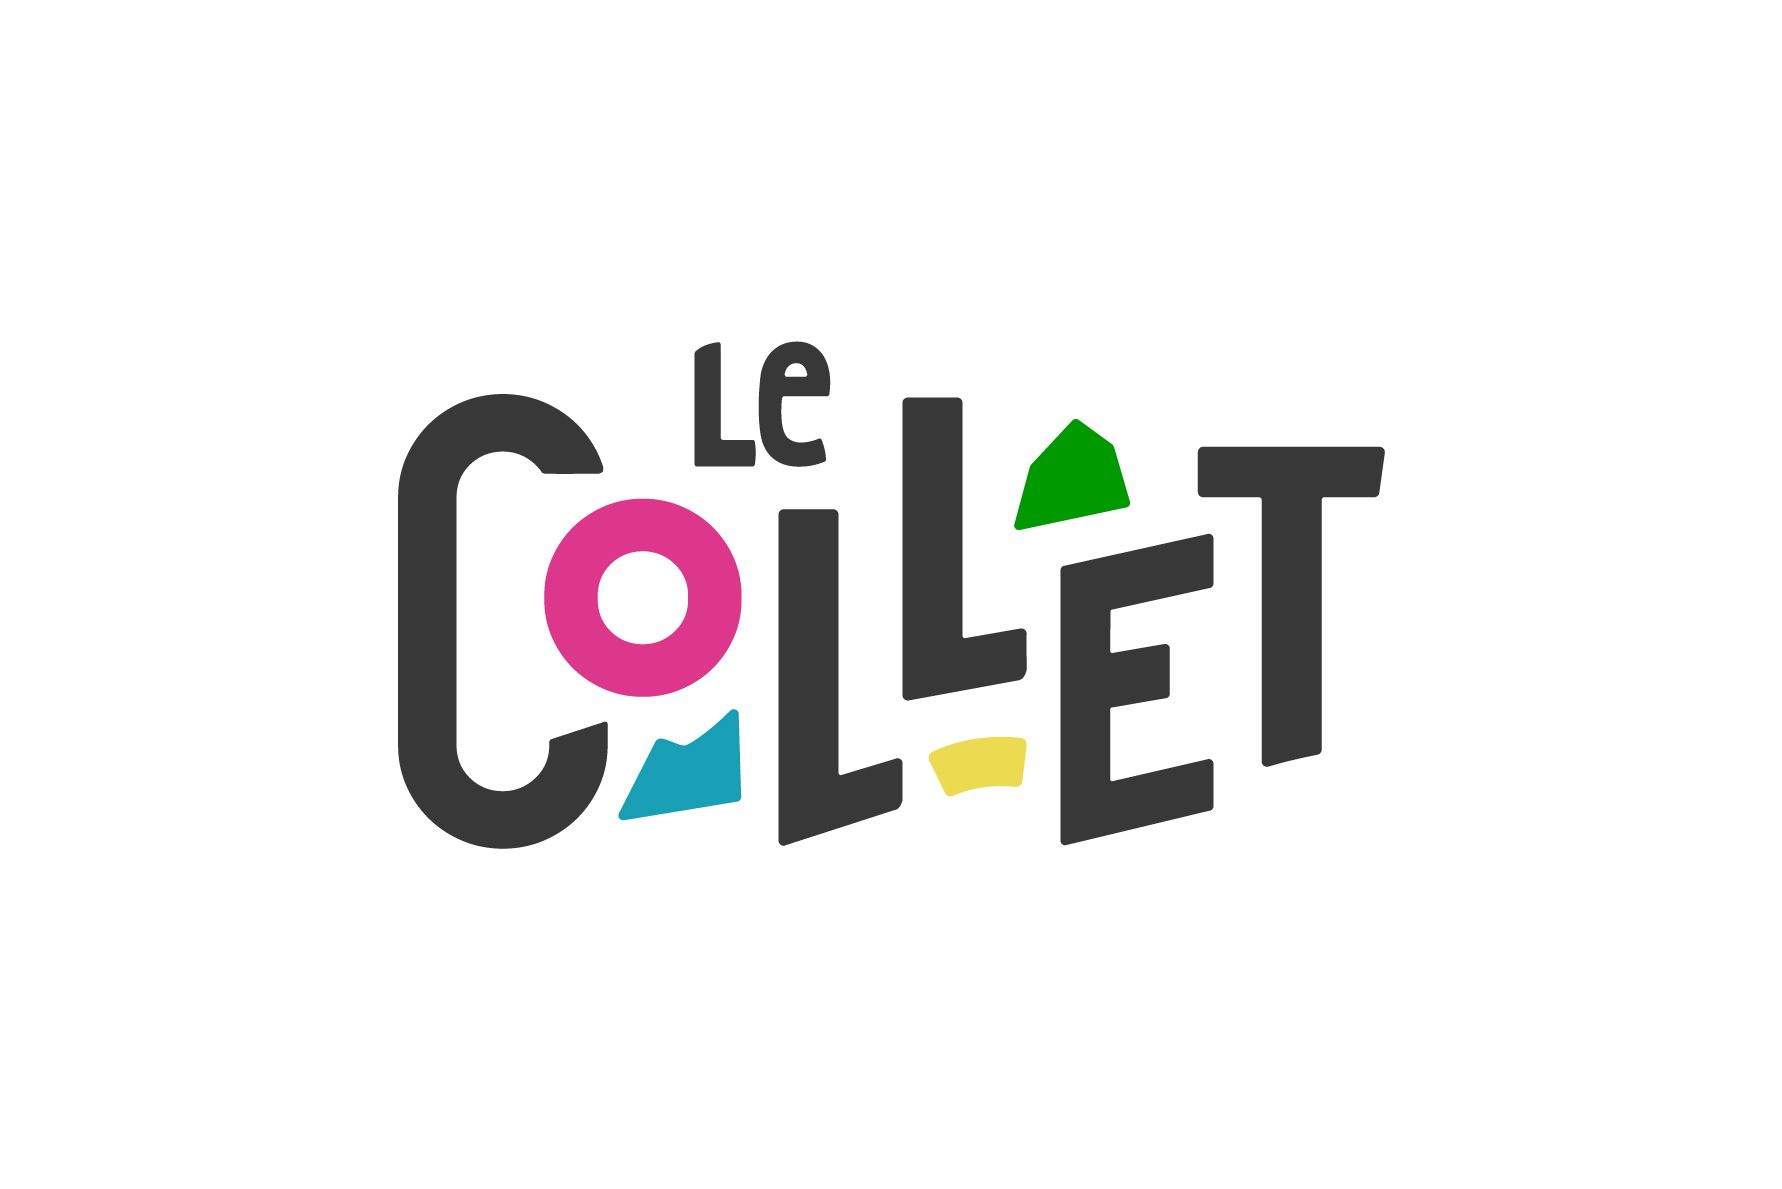 Resort Le Collet d'Allevard